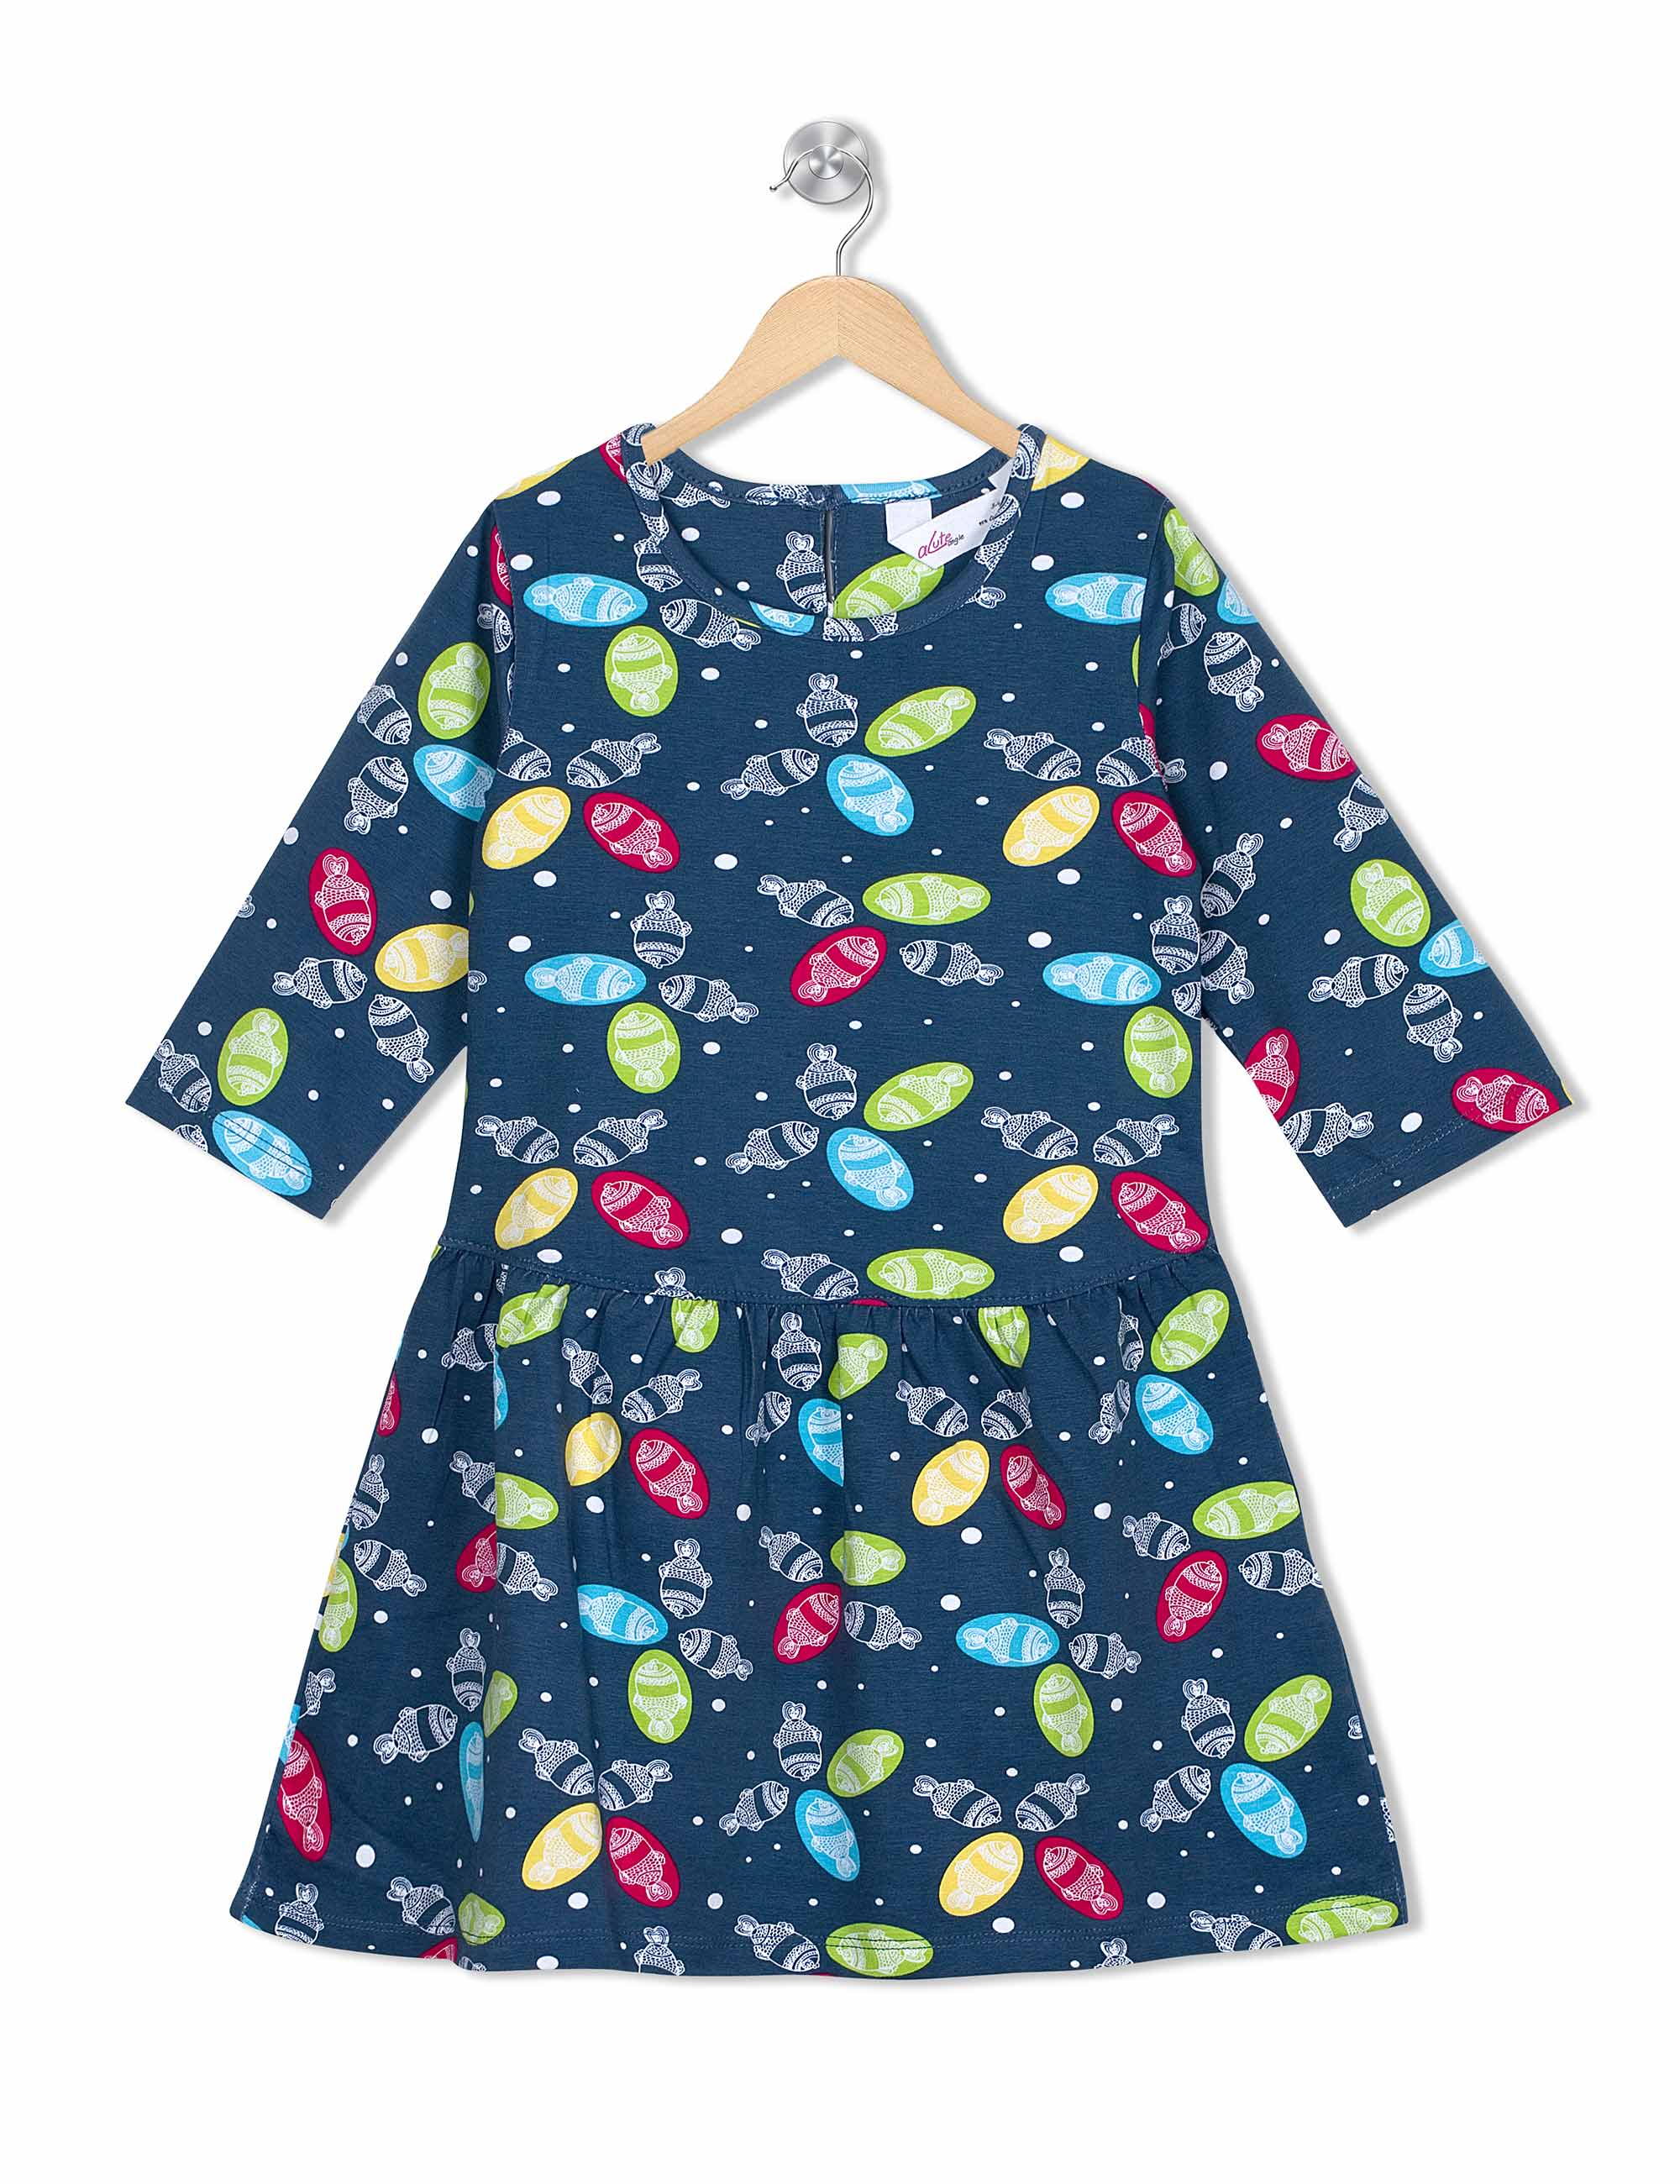 Funky Fish frock In Grey Colour for Girls